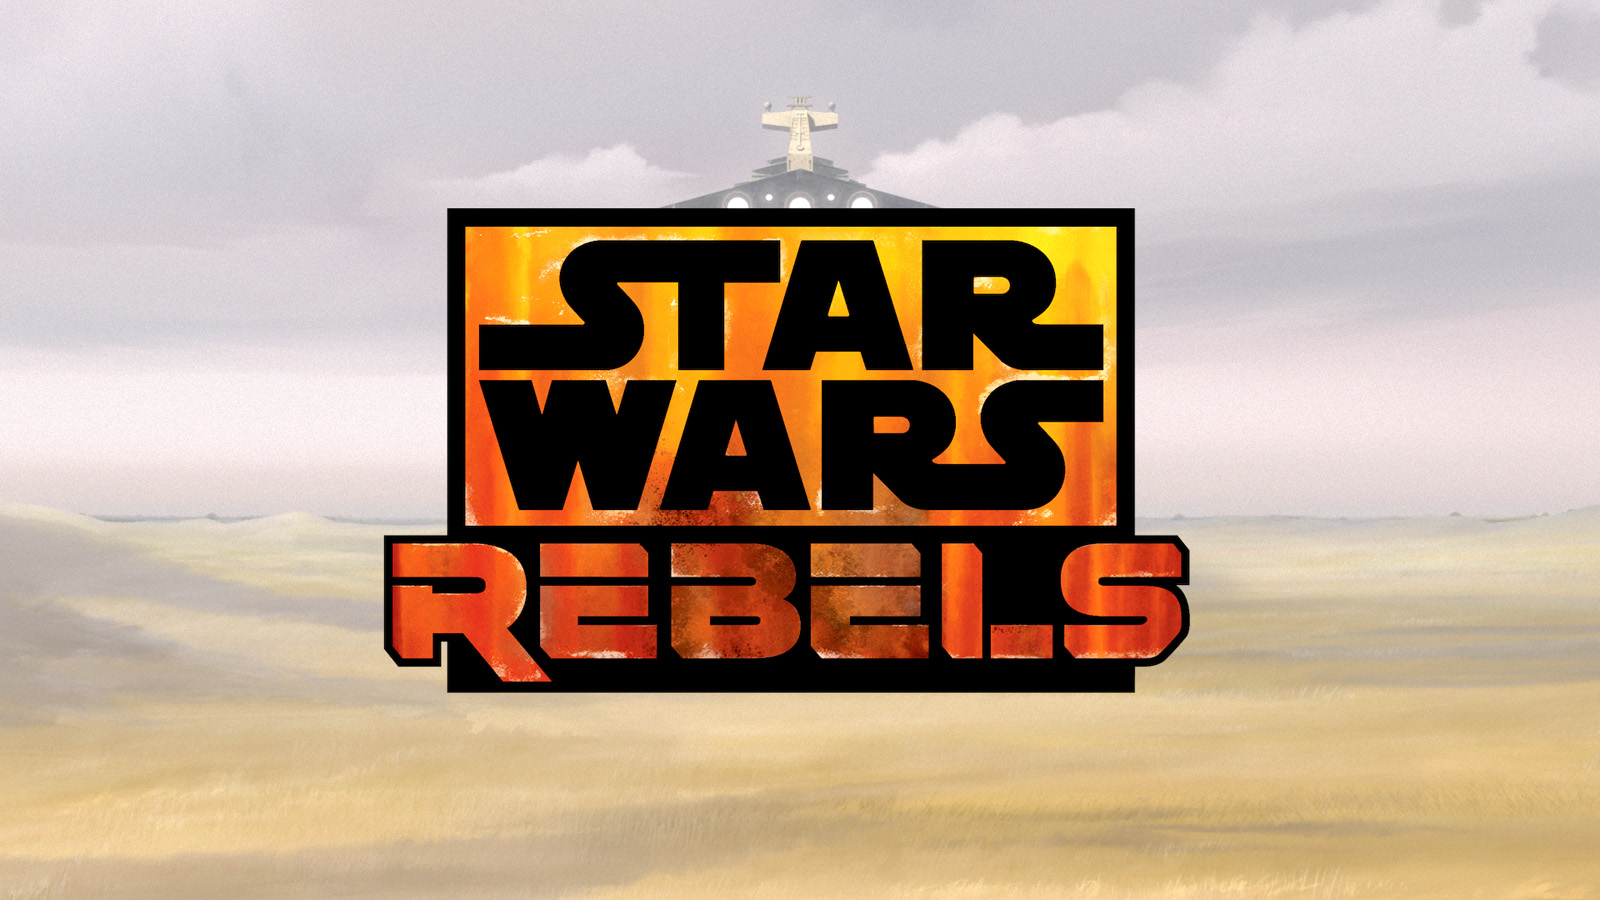 Star Wars Rebels Logo In Spark Of Rebellion